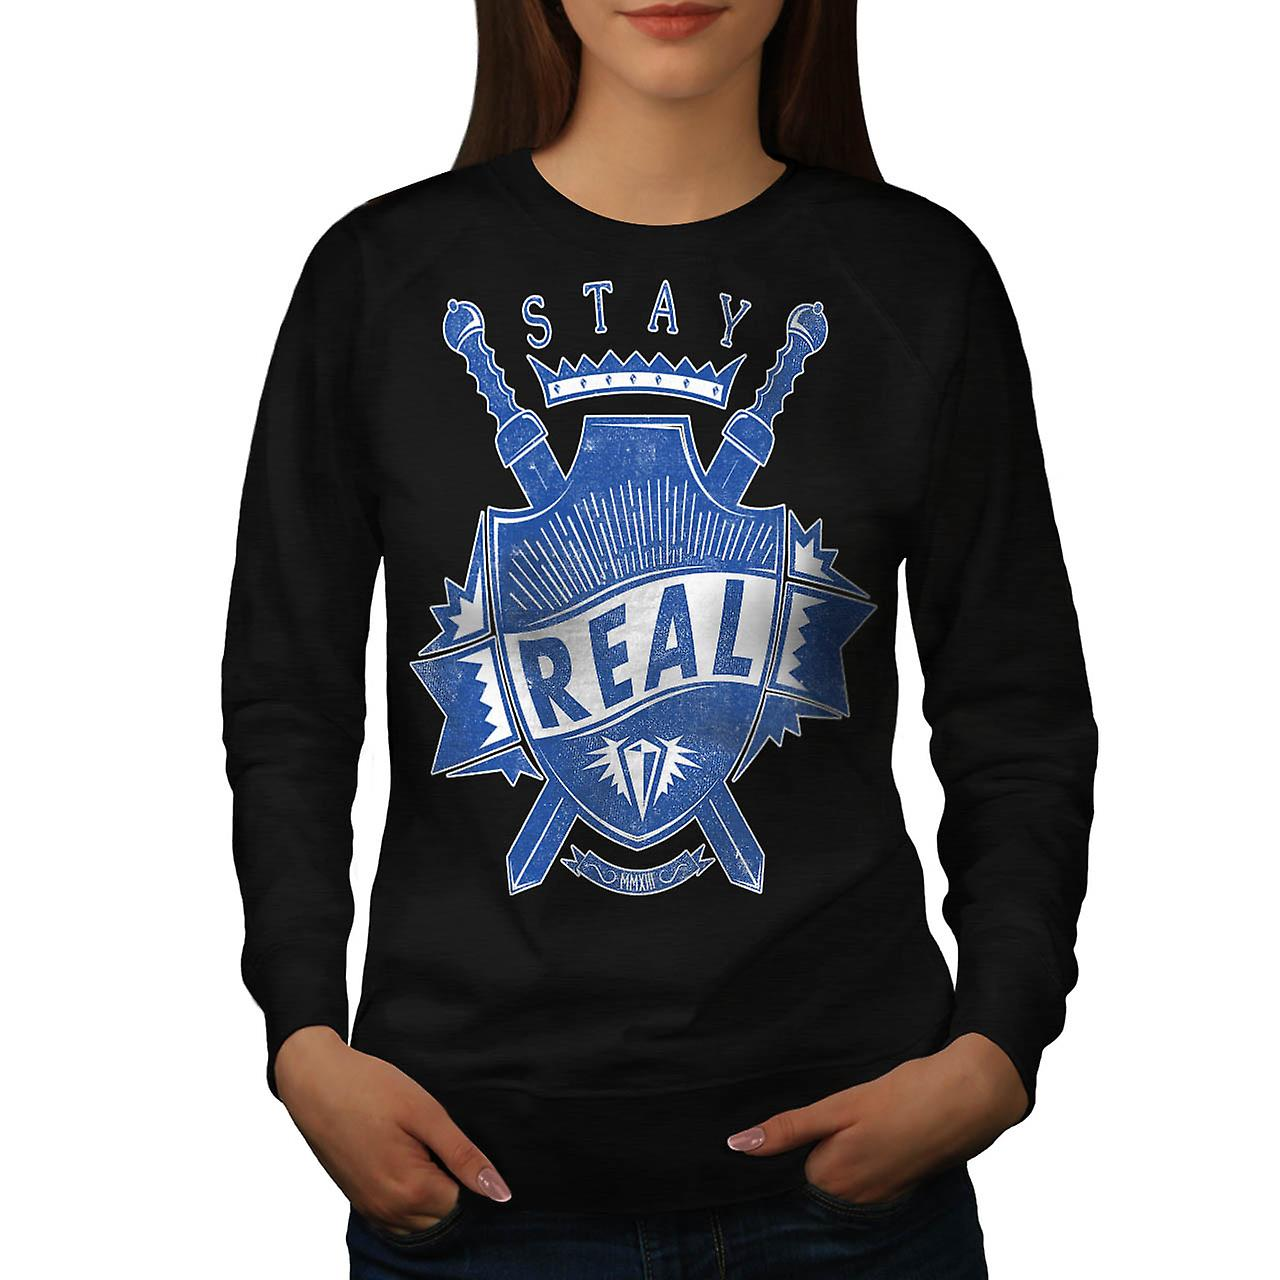 Stay Real Ambition Sword Shield Women Black Sweatshirt | Wellcoda